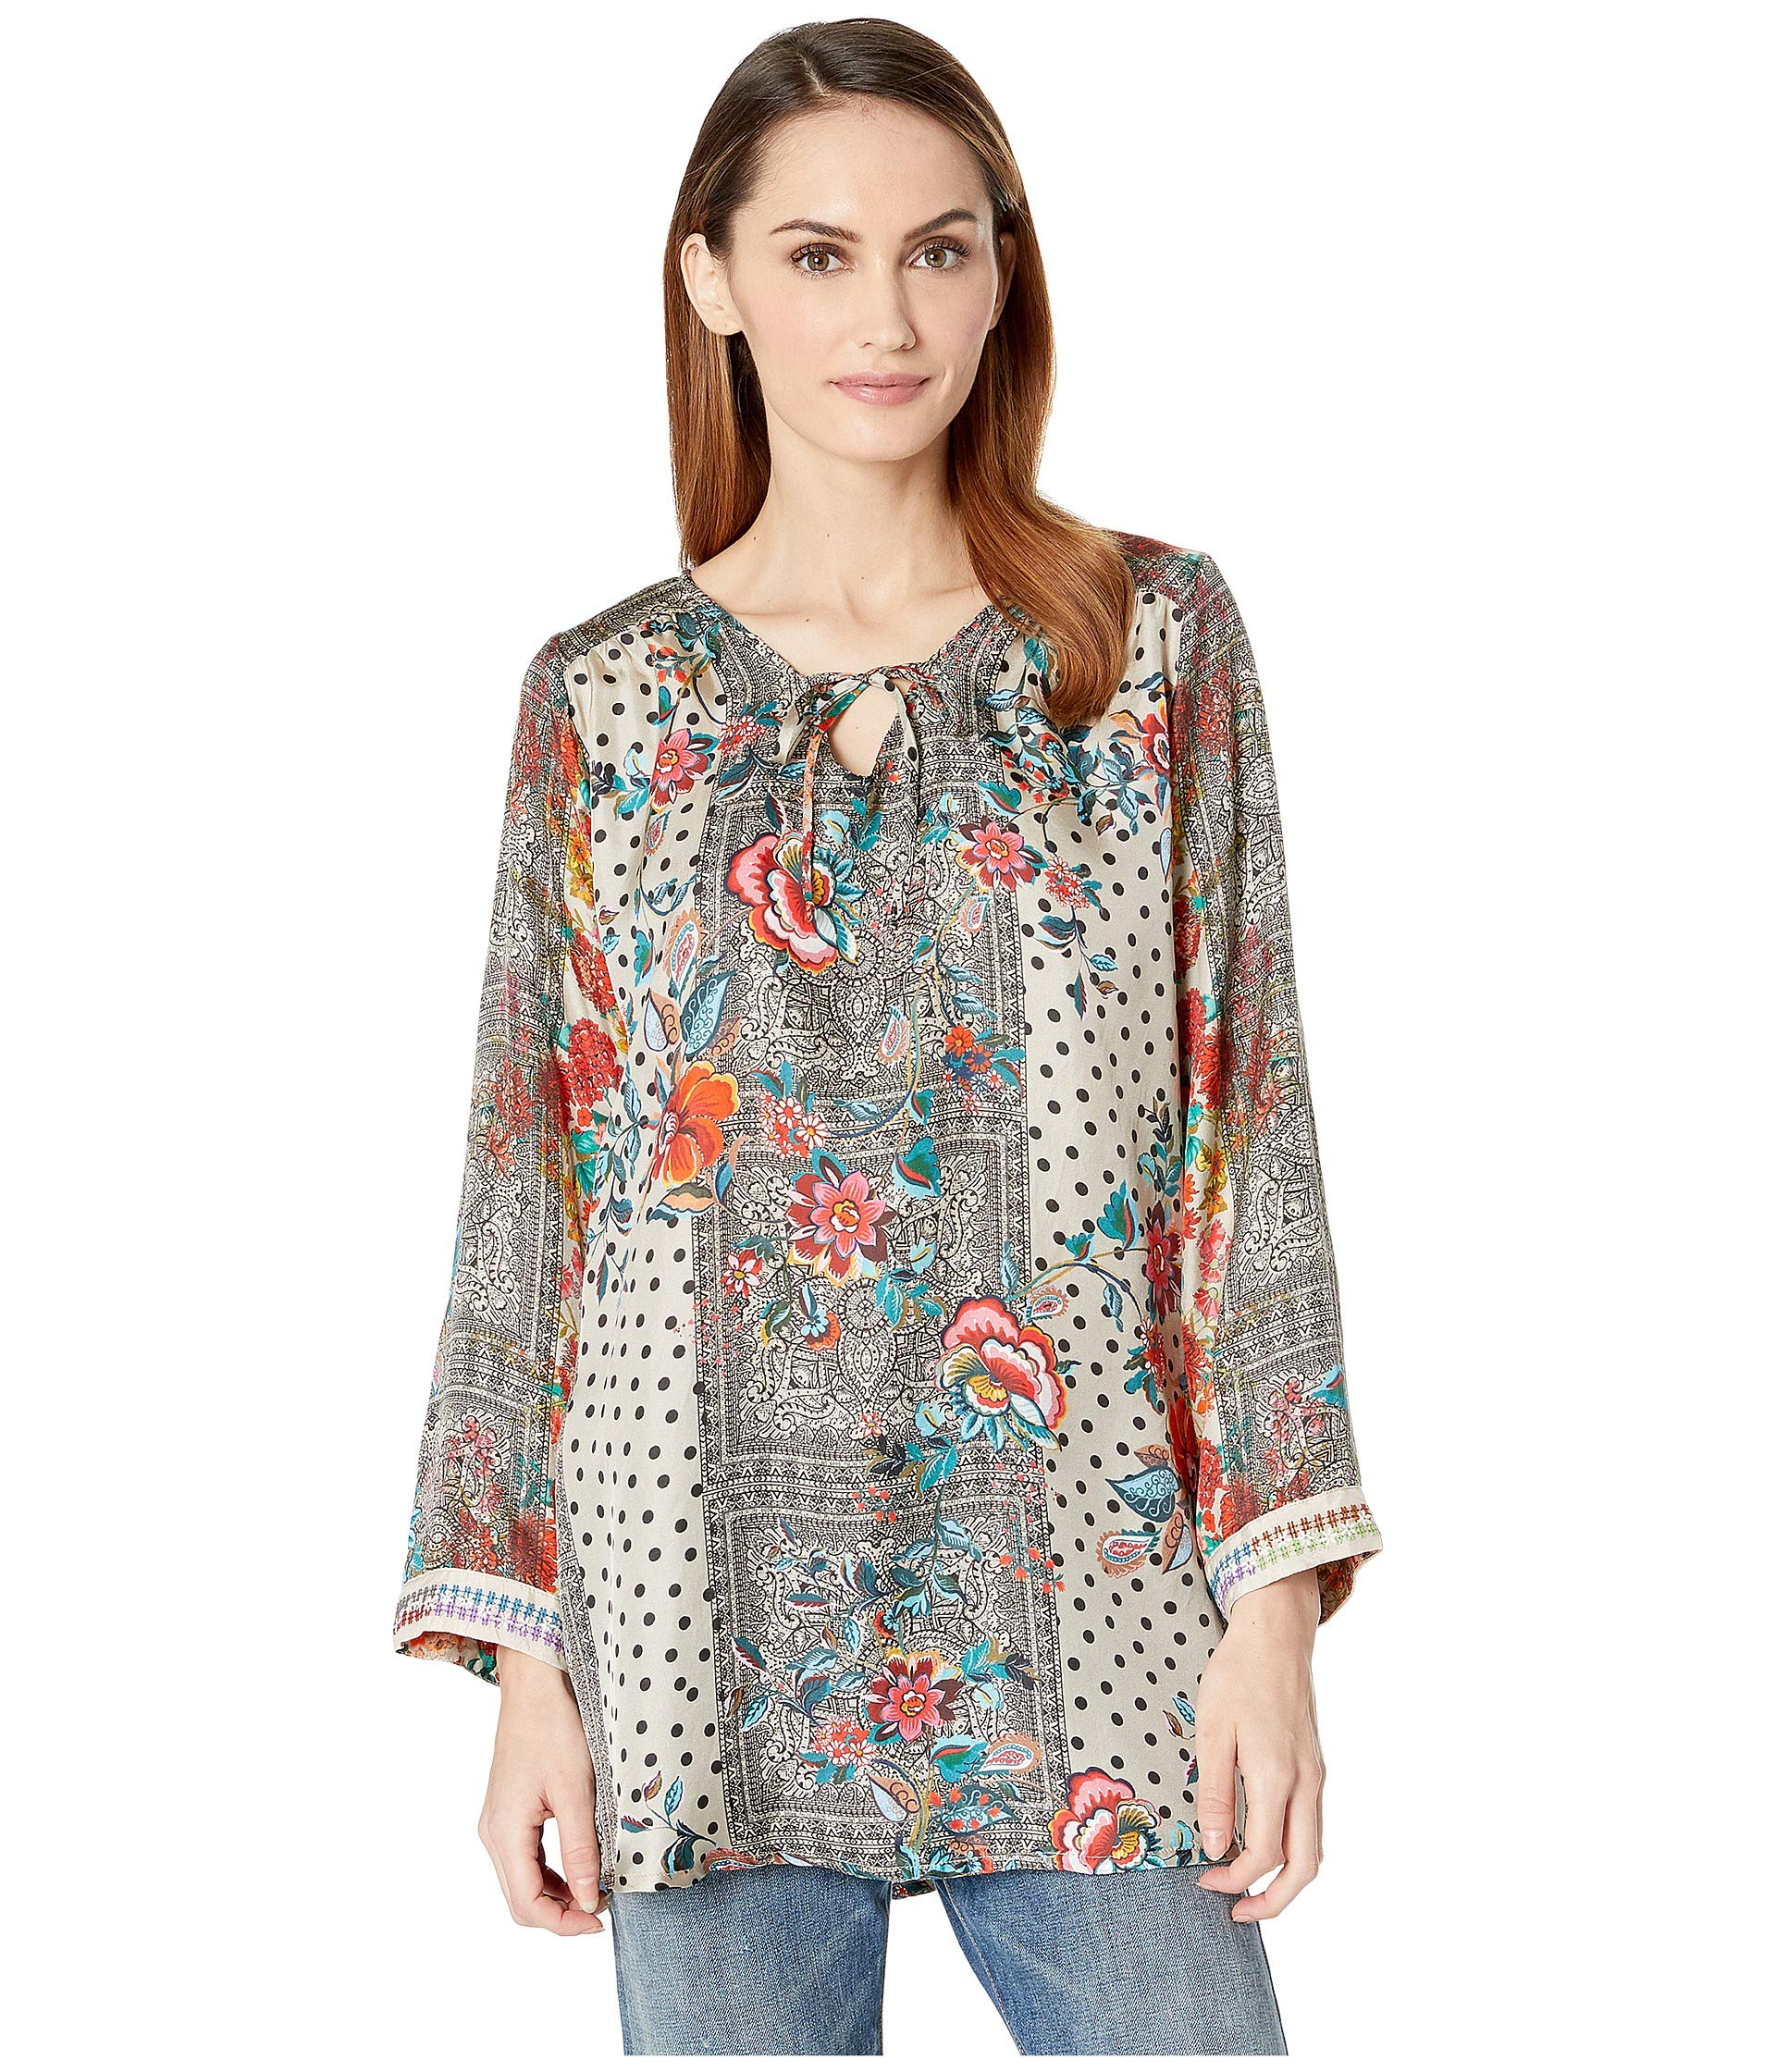 Johnny Was Womens Jolie Blouse